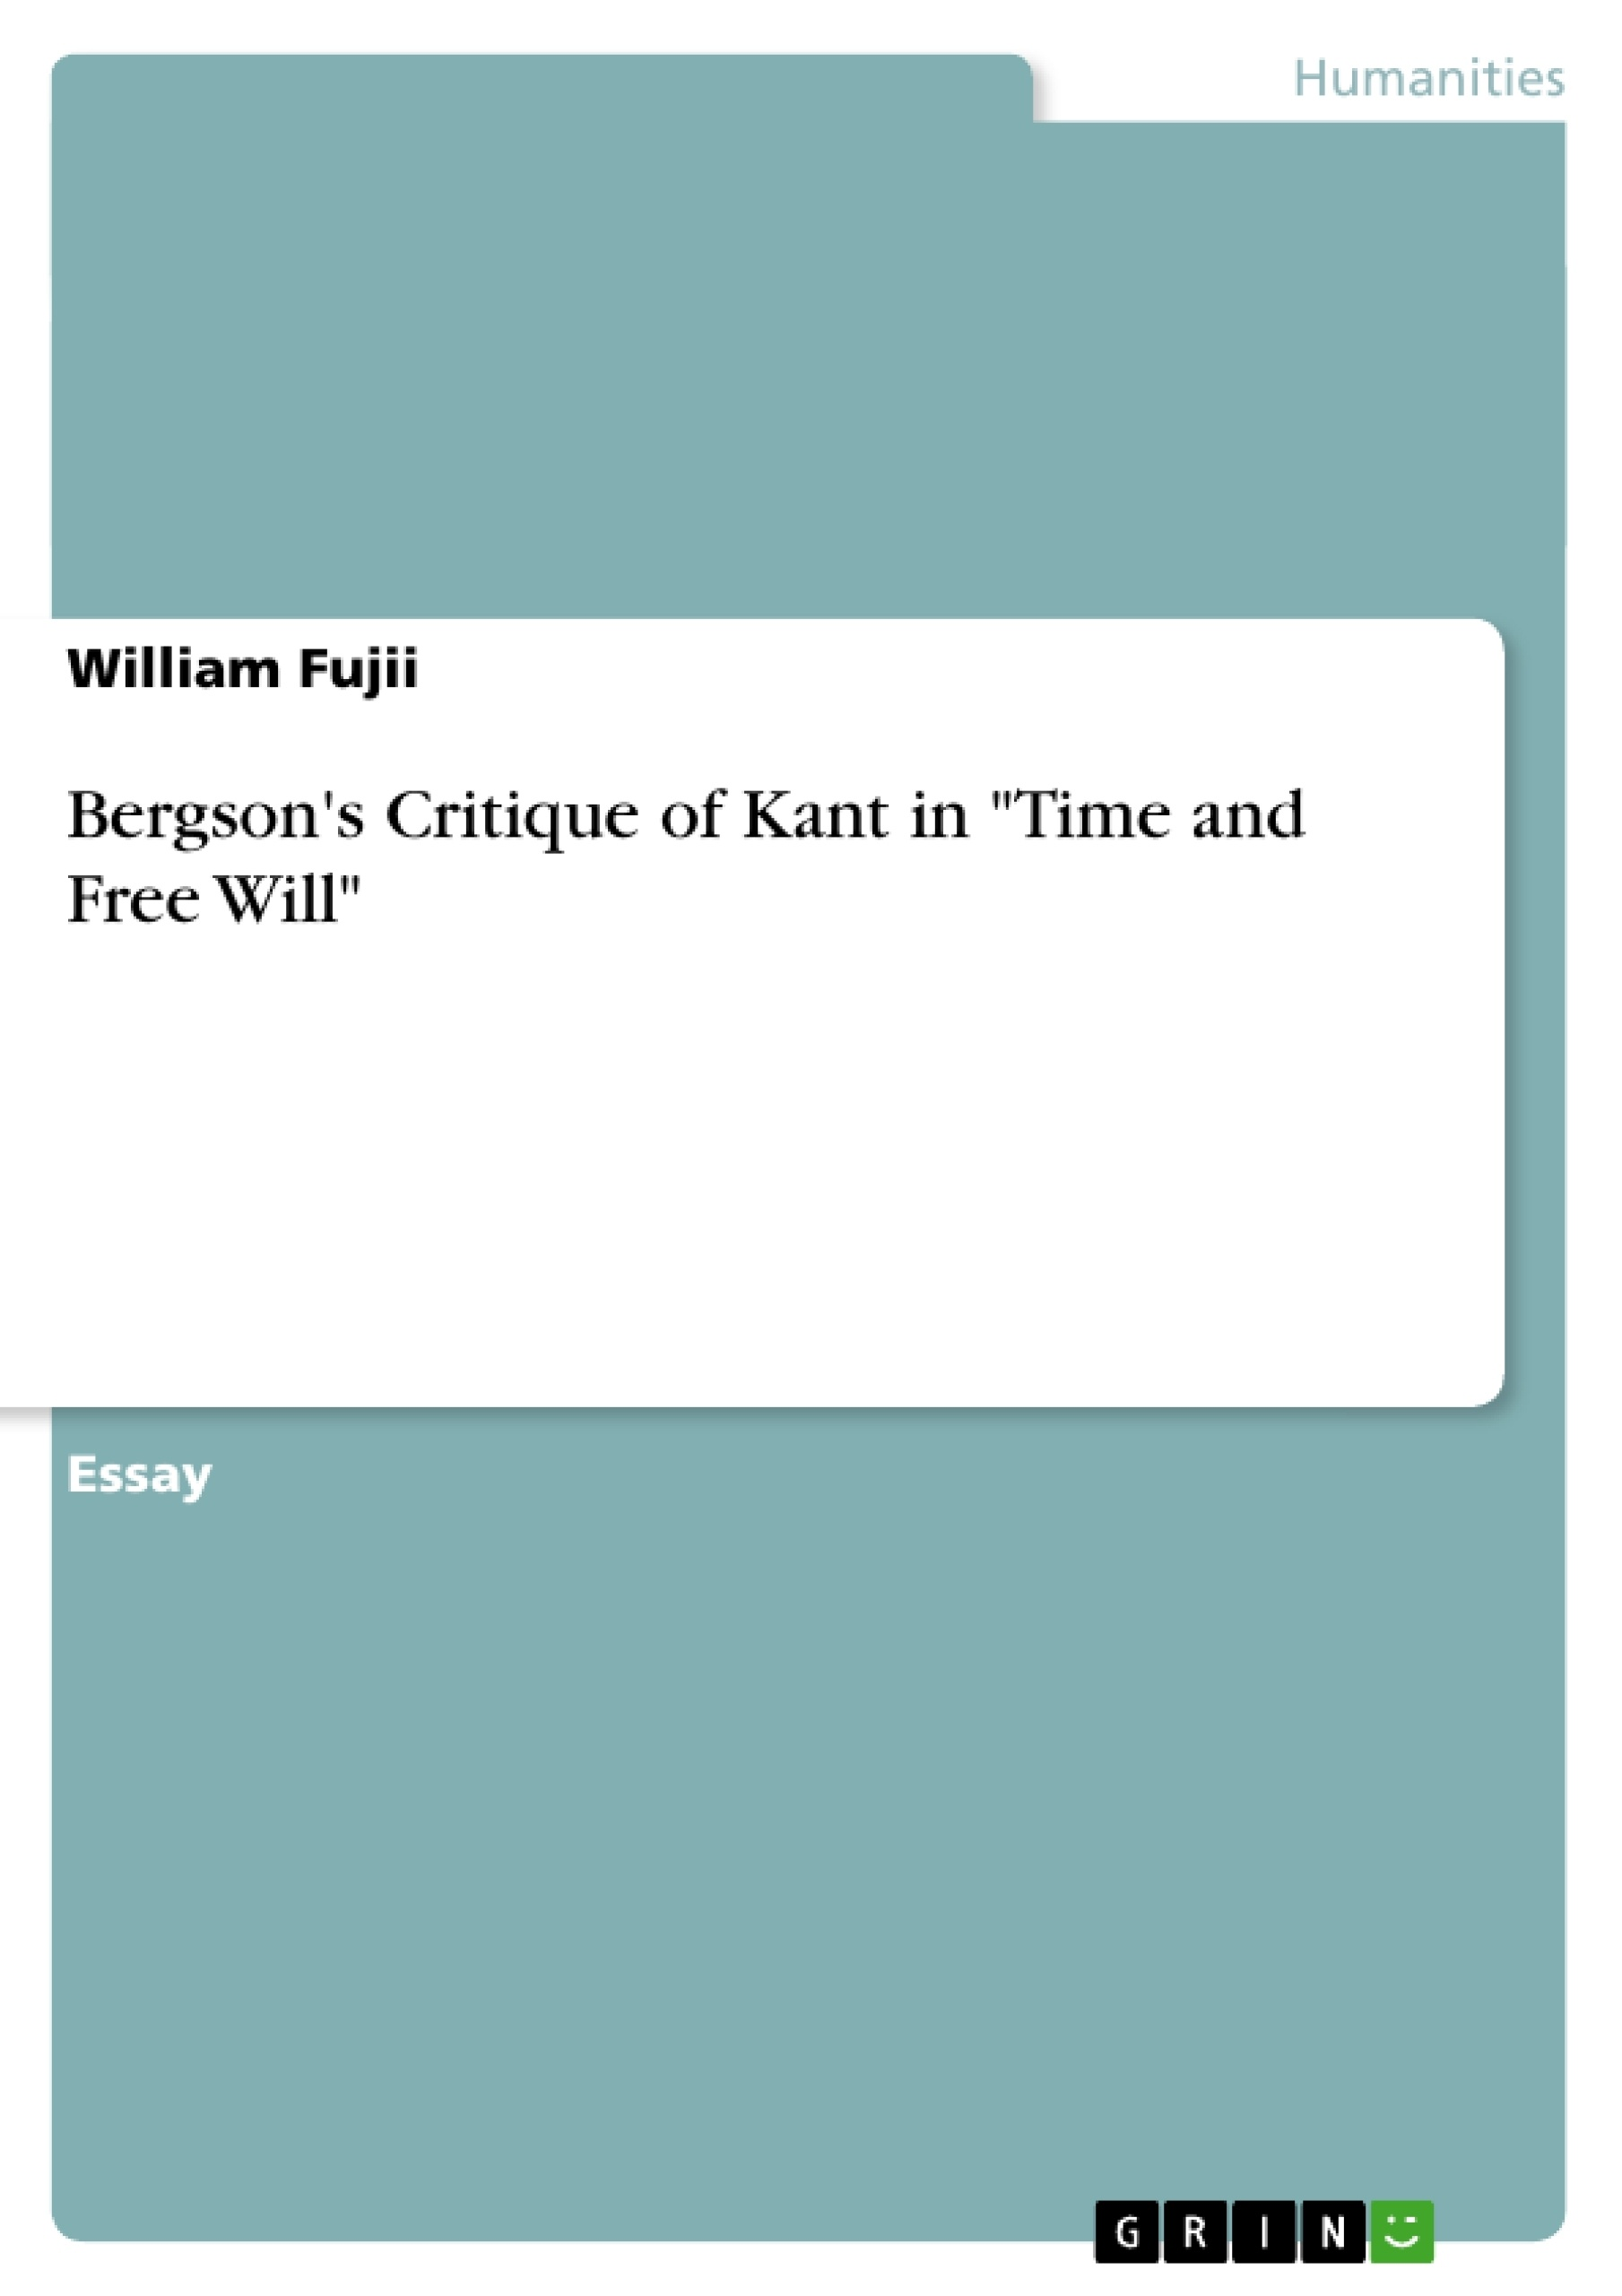 bergson s critique of kant in time and will publish your bergson s critique of kant in time and will publish your master s thesis bachelor s thesis essay or term paper